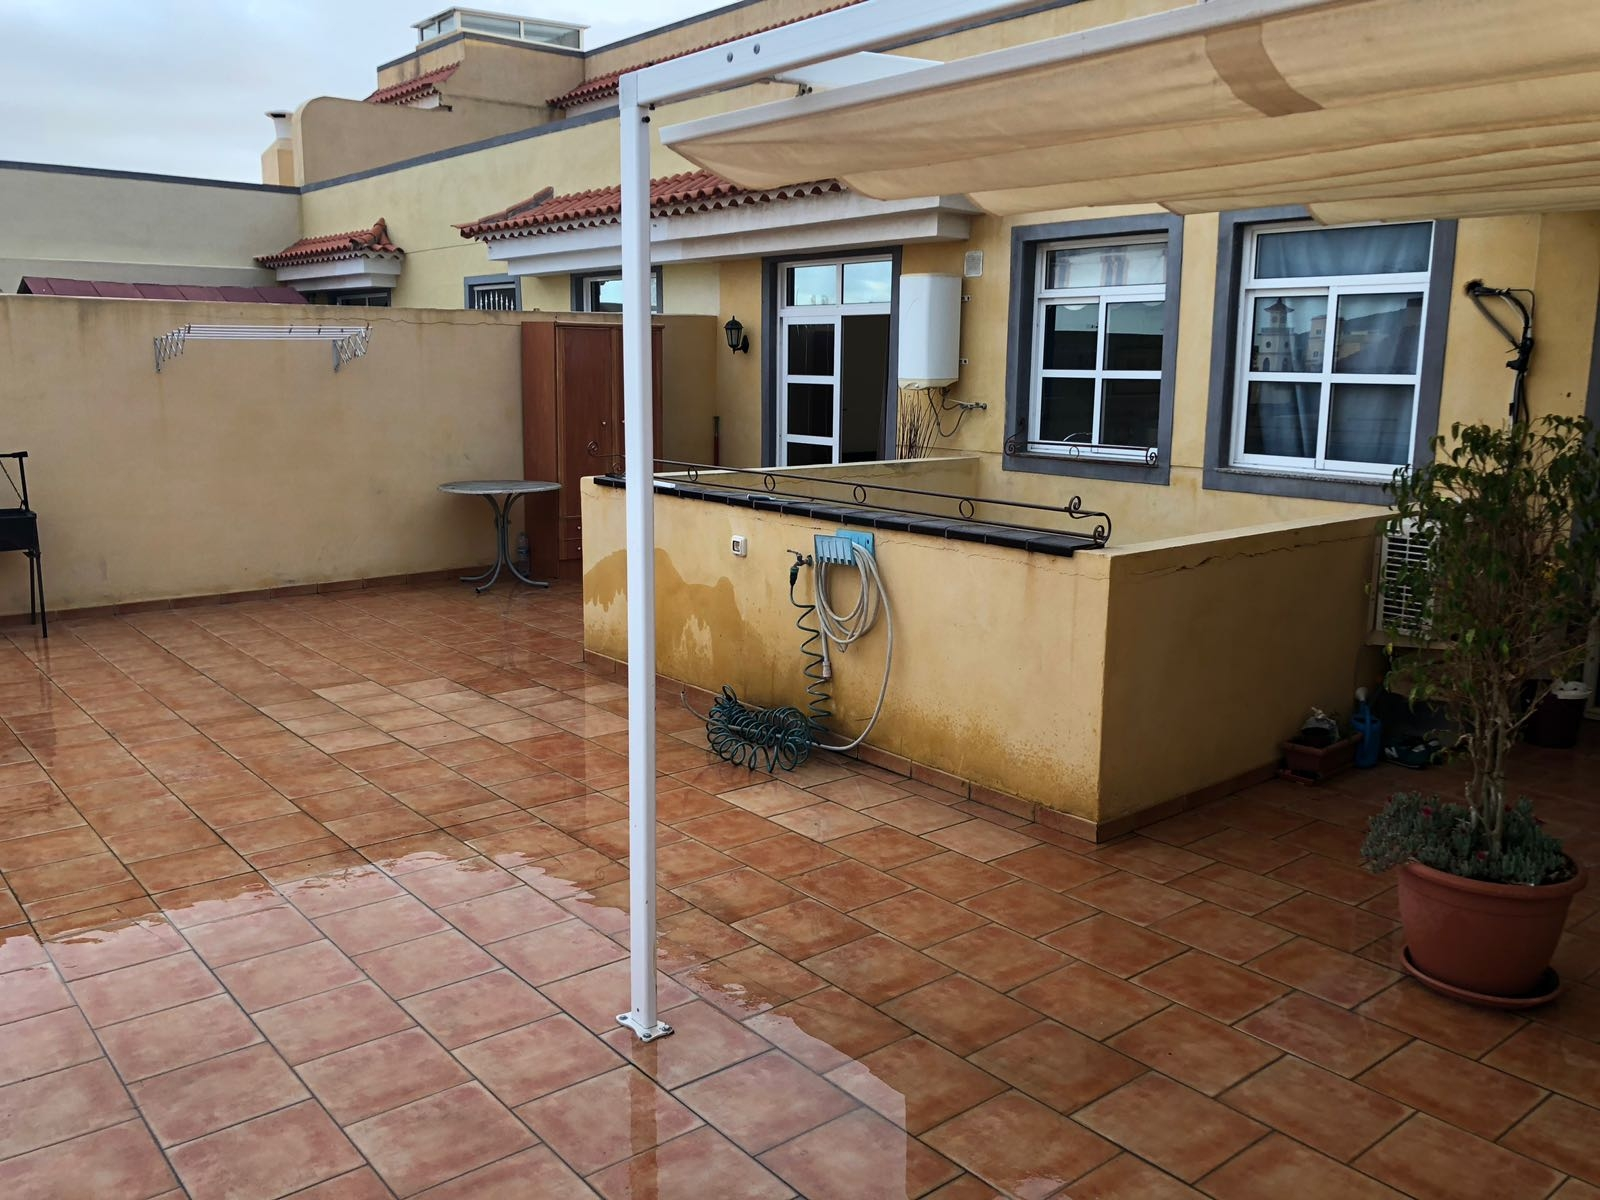 Properties for Sale in Tenerife, Canary Islands, Spain | SylkWayStar Real Estate. 1 bedroom apartment Cabo Blanco. Image-24009